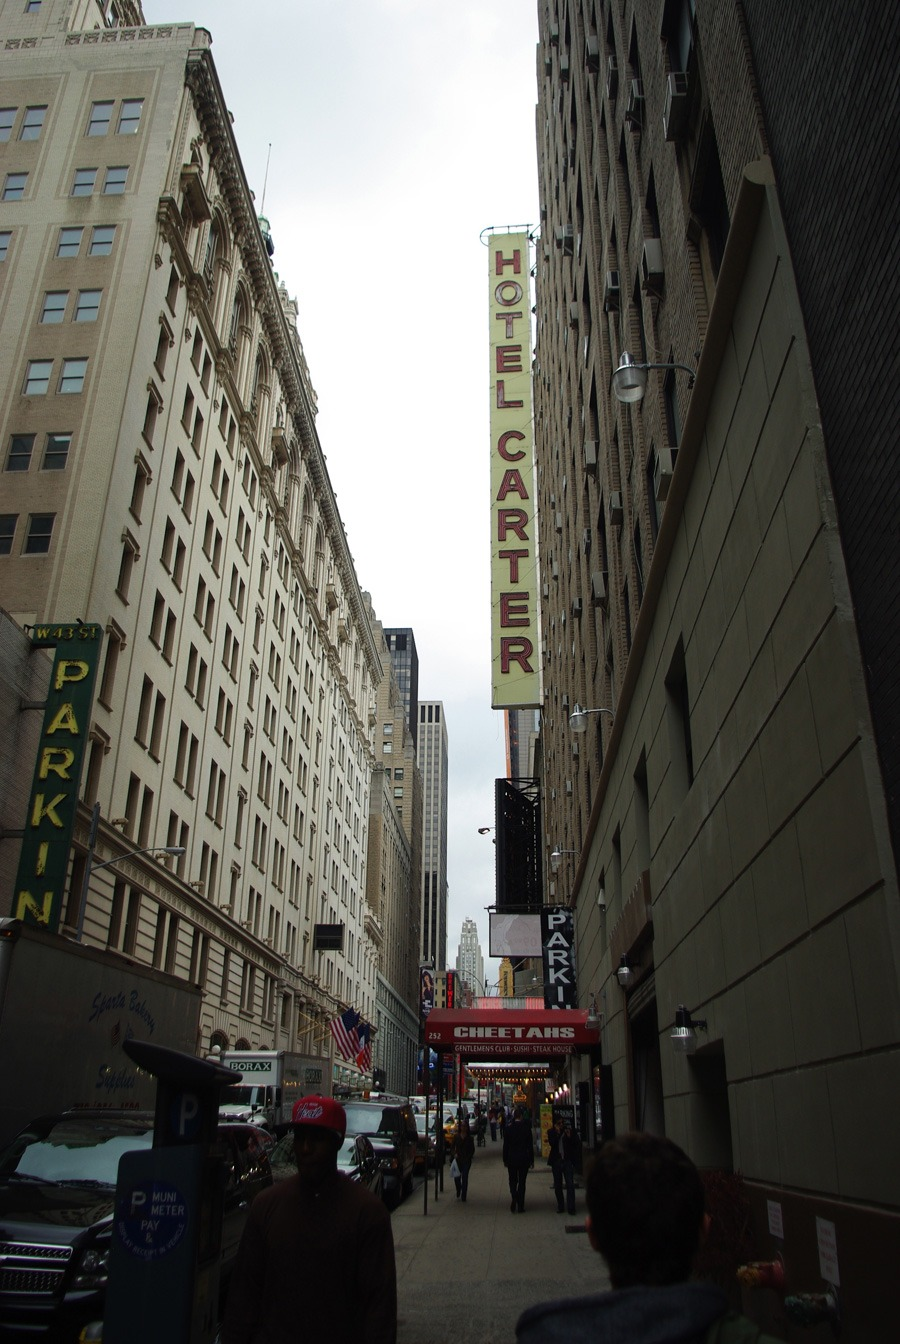 hotel-eric-carter-new-york-city